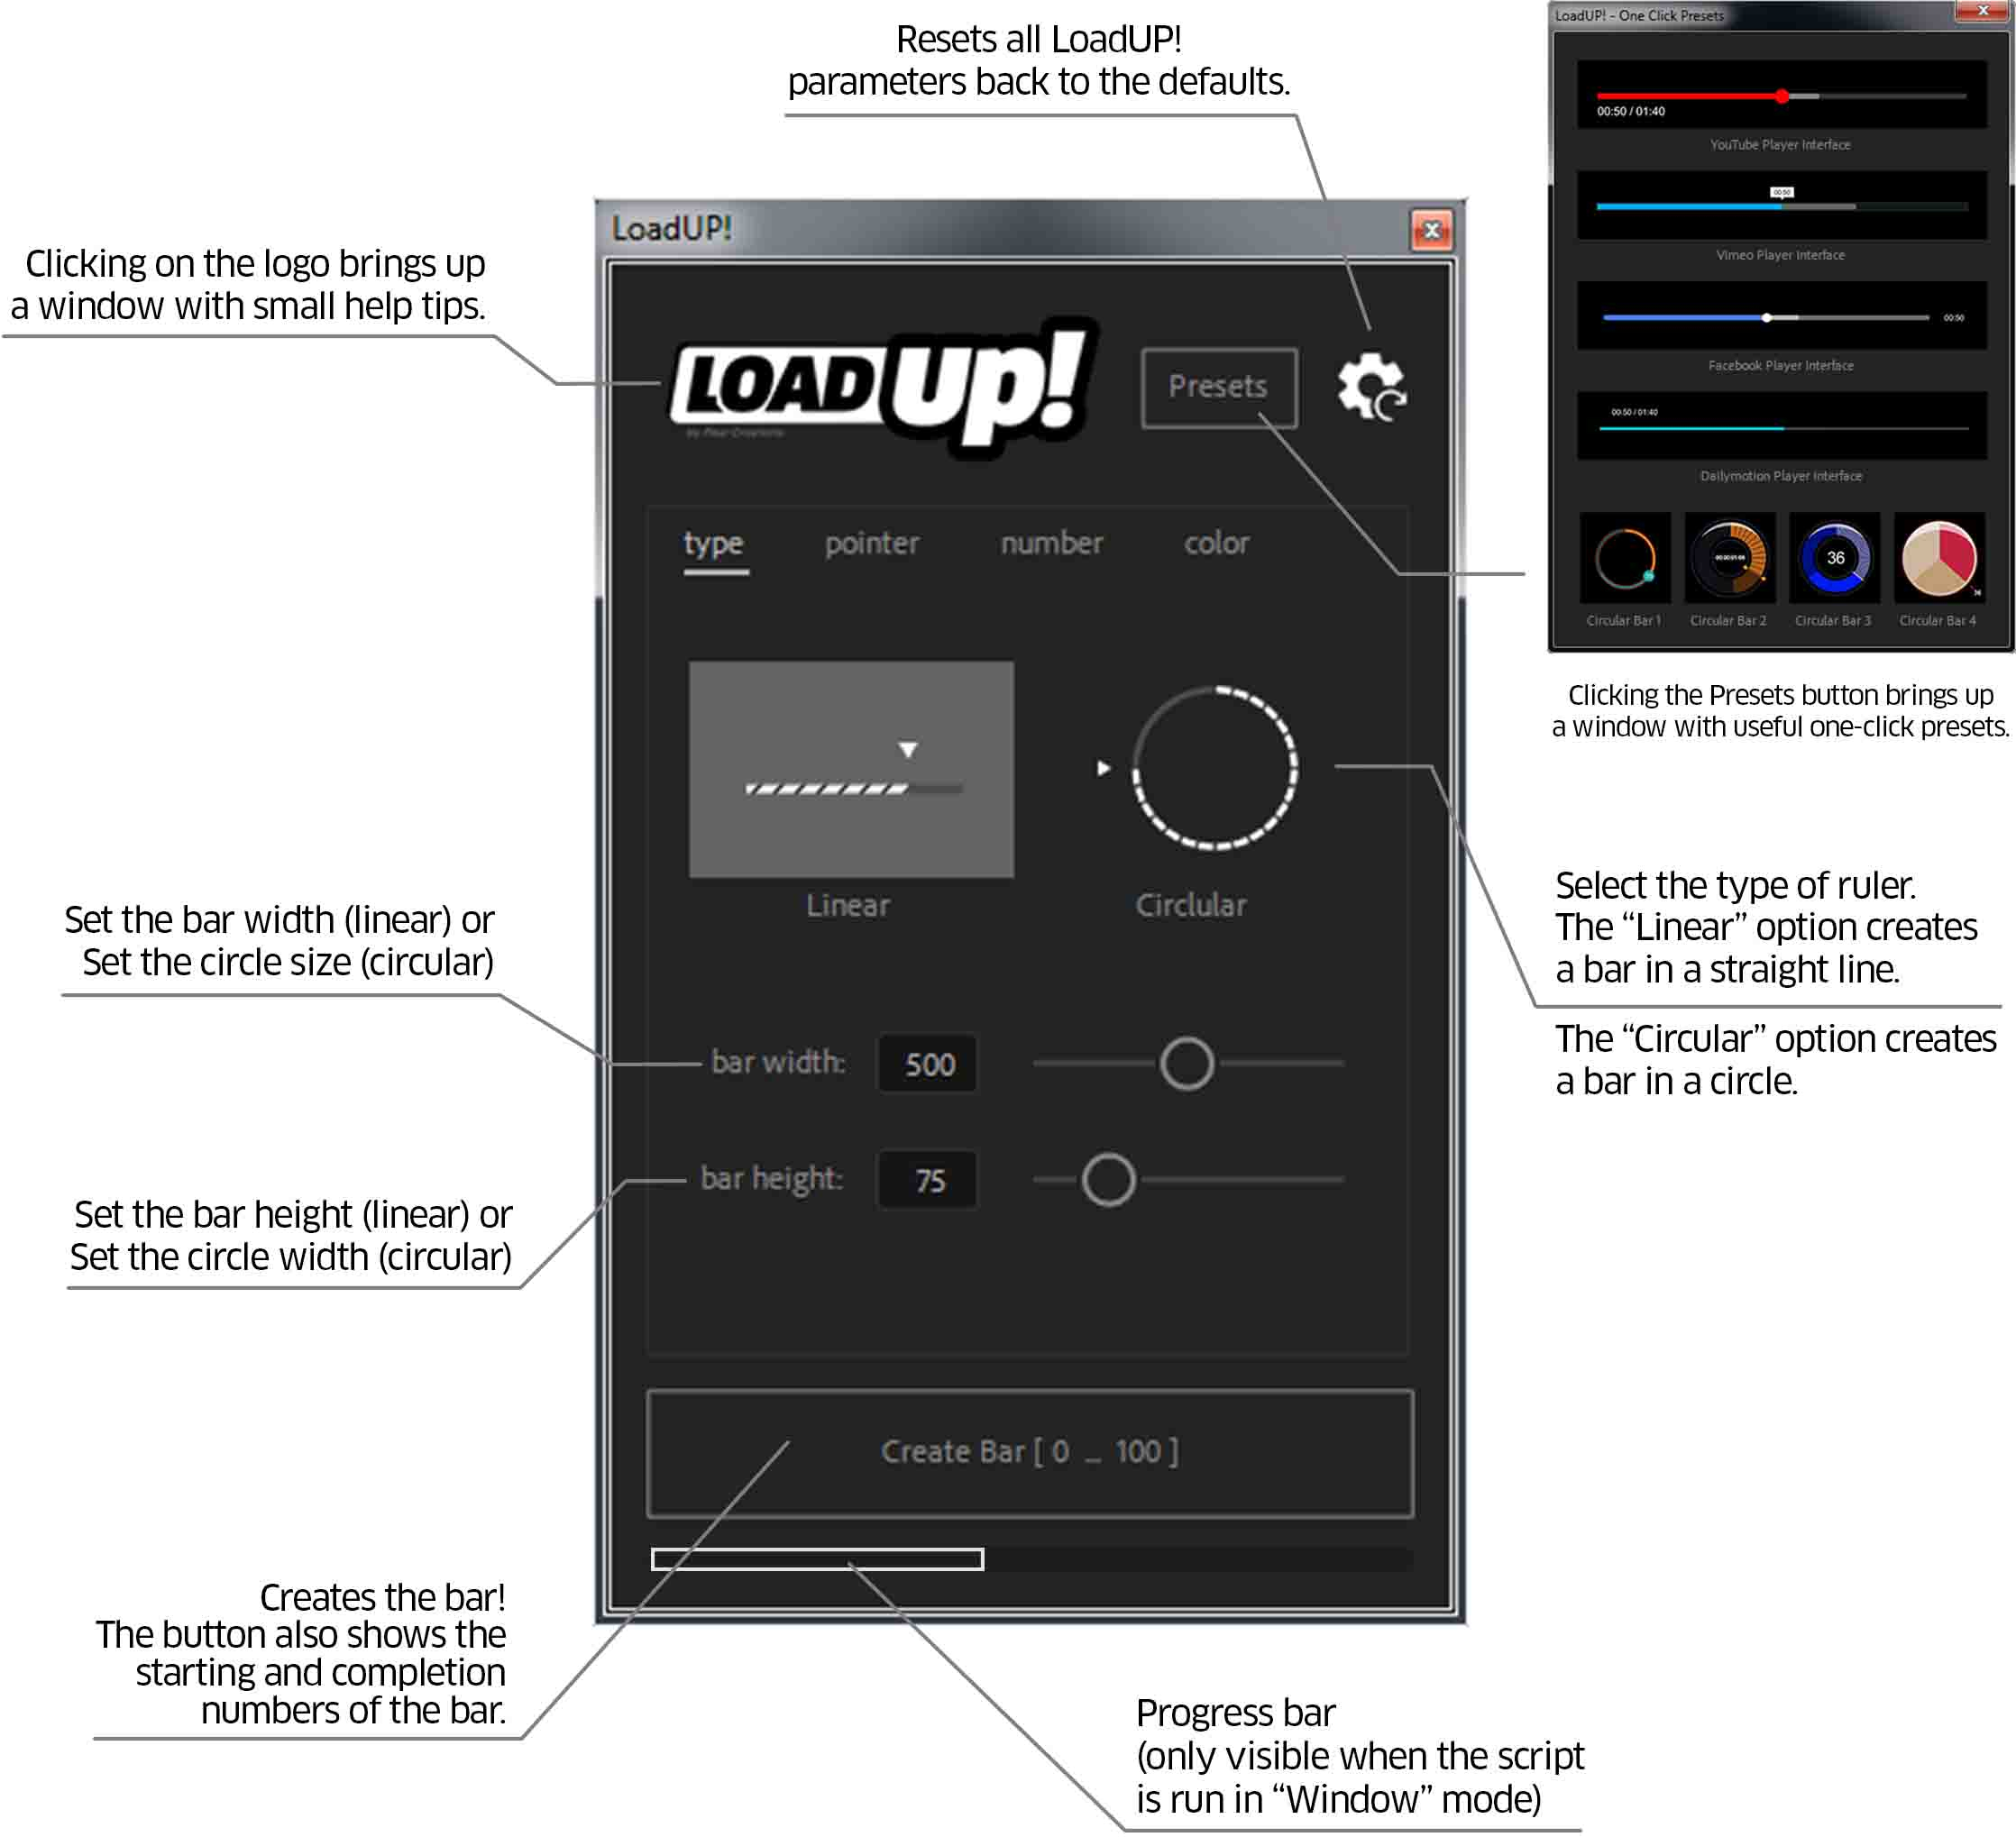 LoadUP - user interface